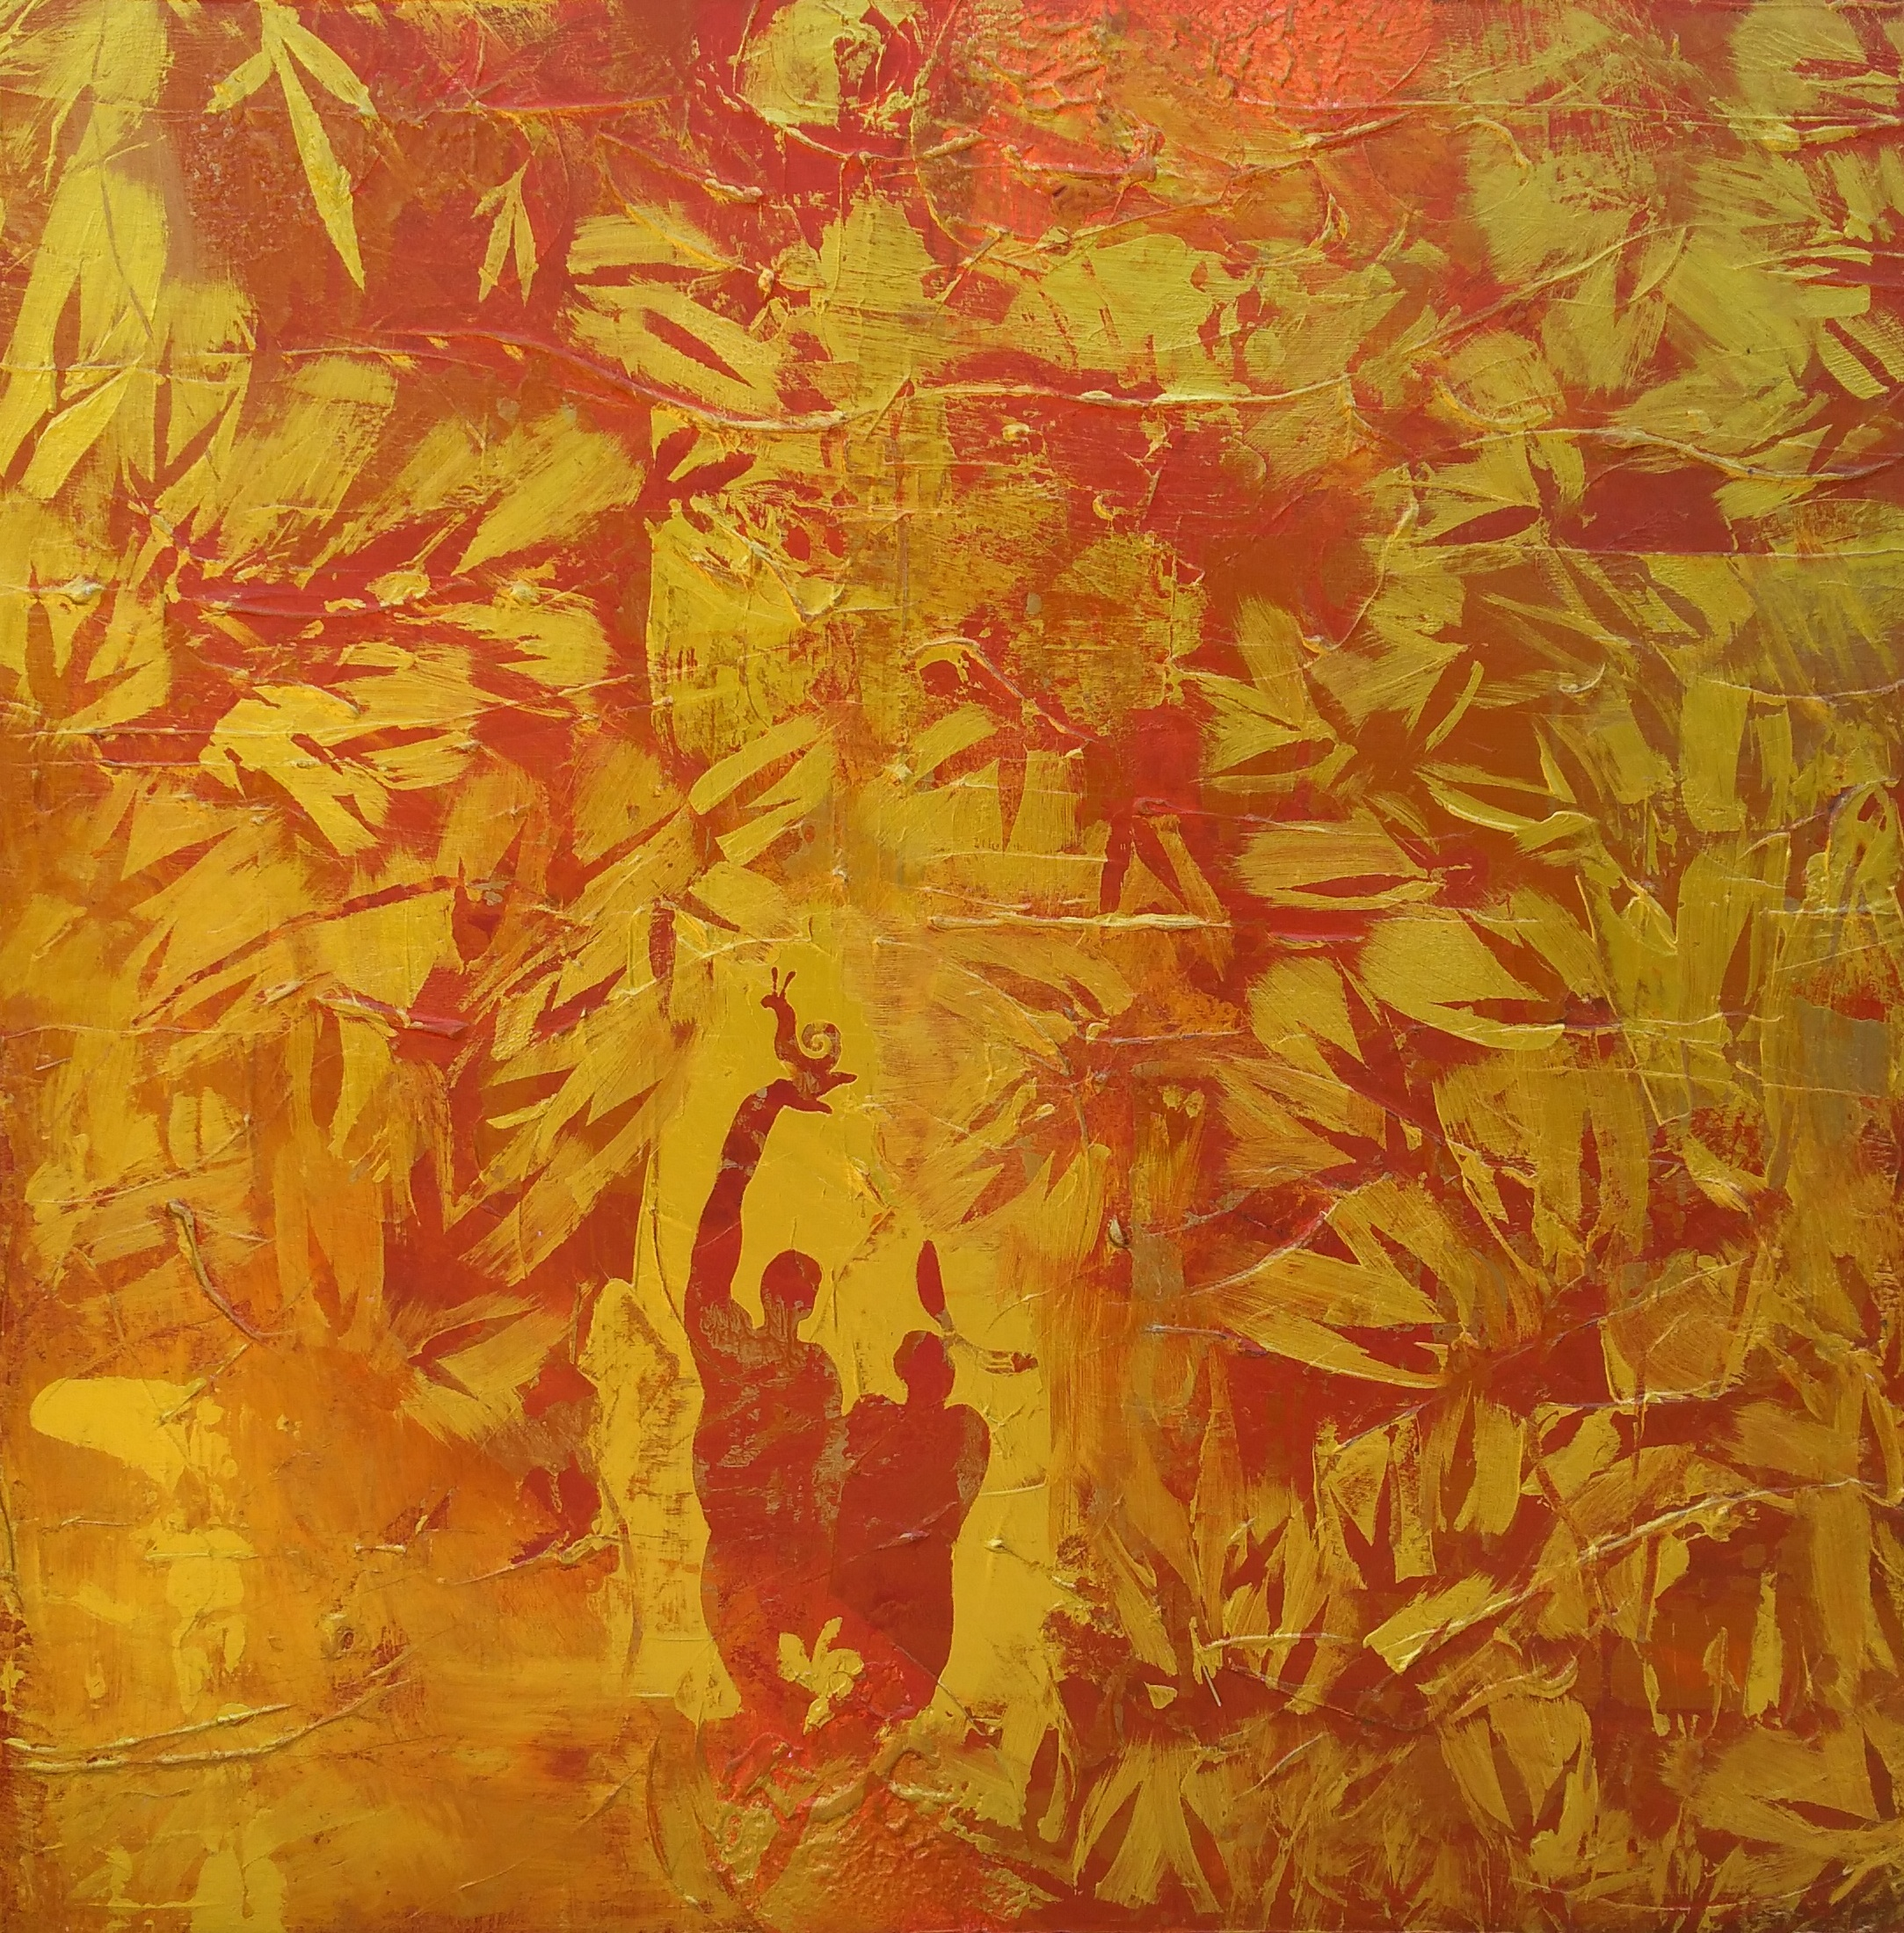 « The bamboo forest – La bambouseraie » - Acrylic – 36 x 36 (91 x 91 cm)